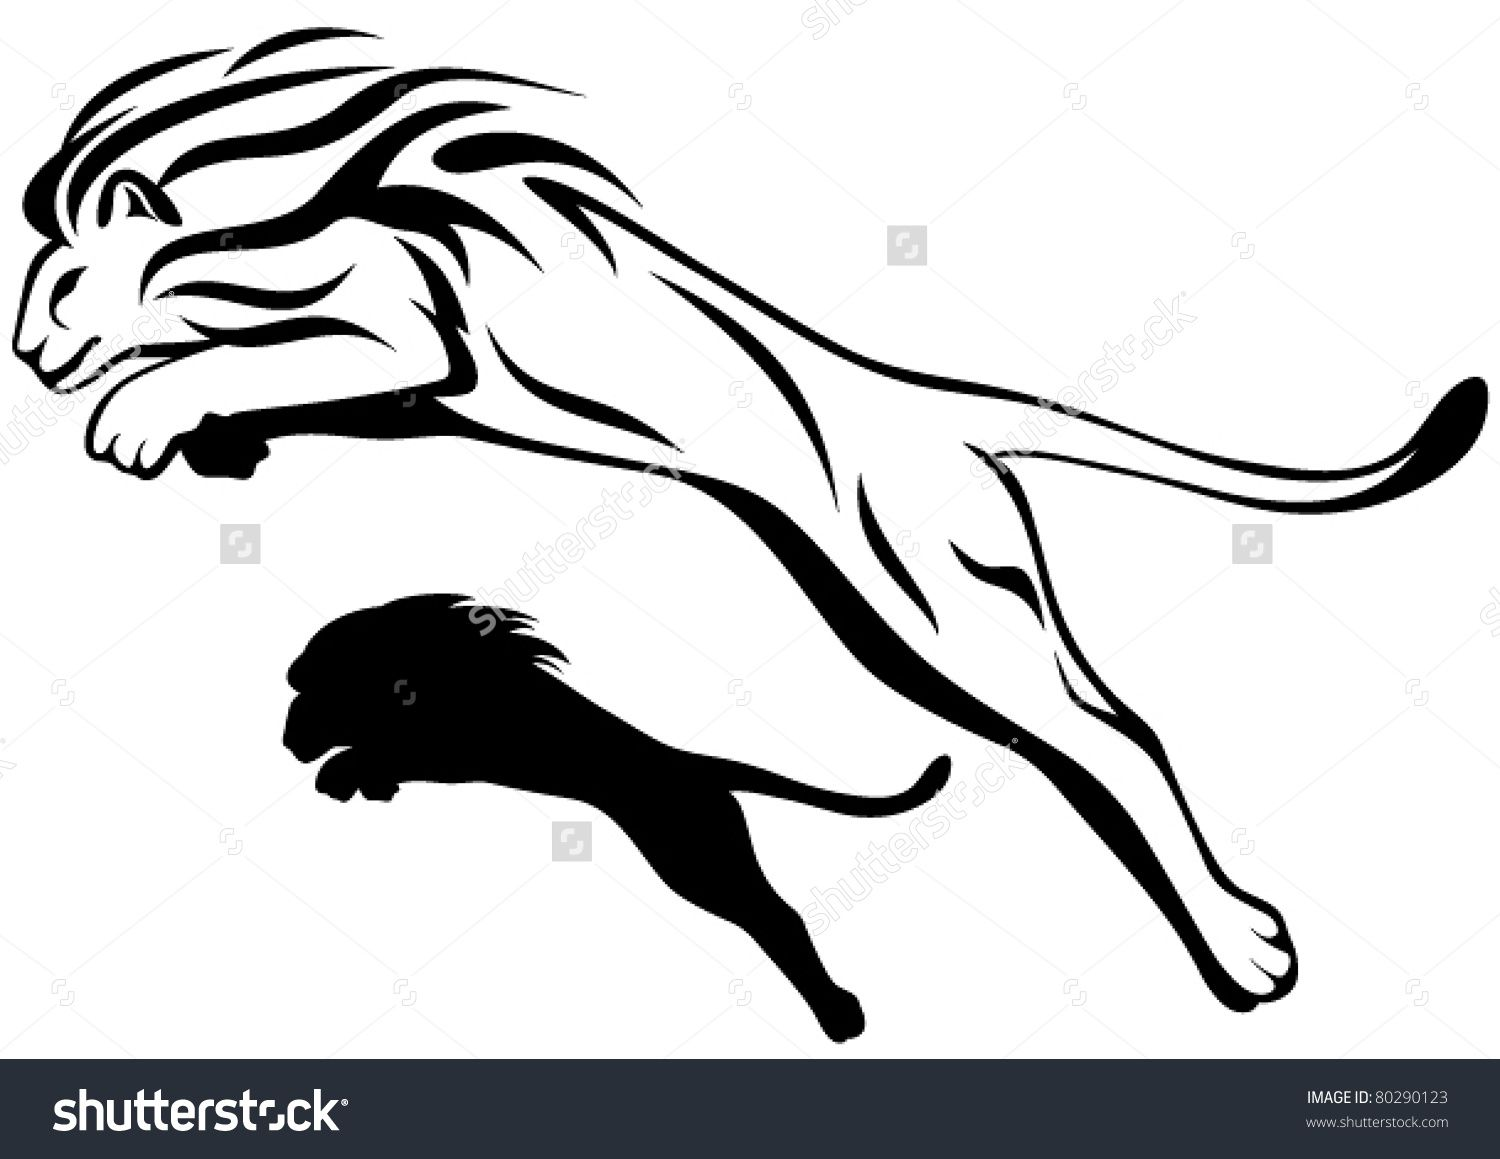 Line Drawing Lion Head : Jumping lion vector illustration outline and silhouette tatto